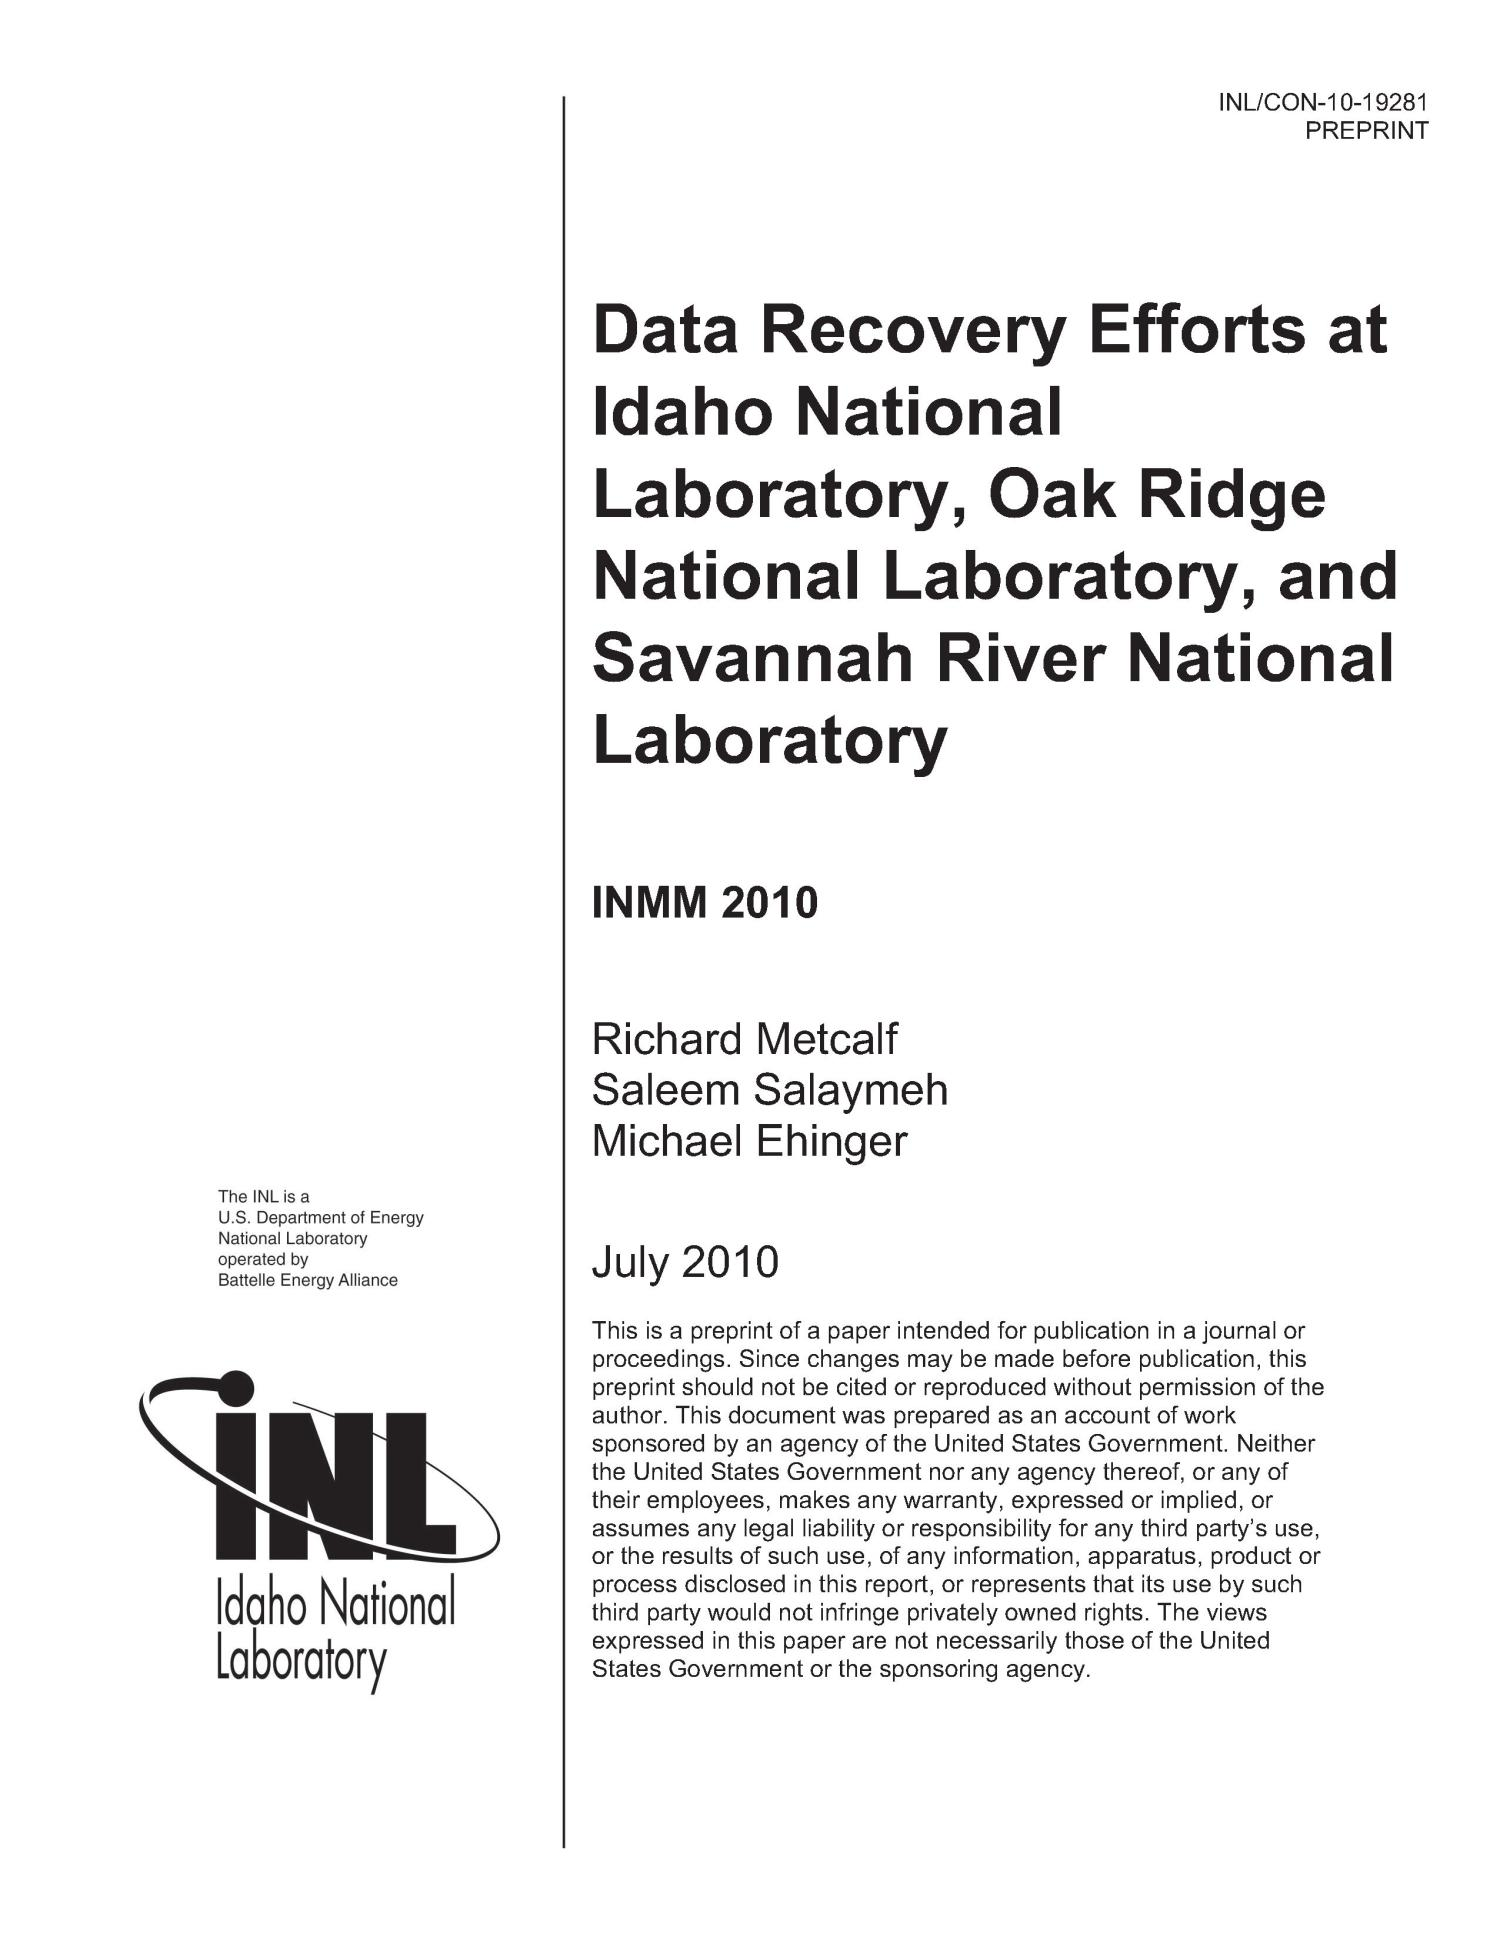 DATA RECOVERY EFFORTS AT IDAHO NATIONAL LABORATORY, OAK RIDGE NATIONAL LABORATORY, AND SAVANNAH RIVER NATIONAL LABORATORY                                                                                                      [Sequence #]: 1 of 12